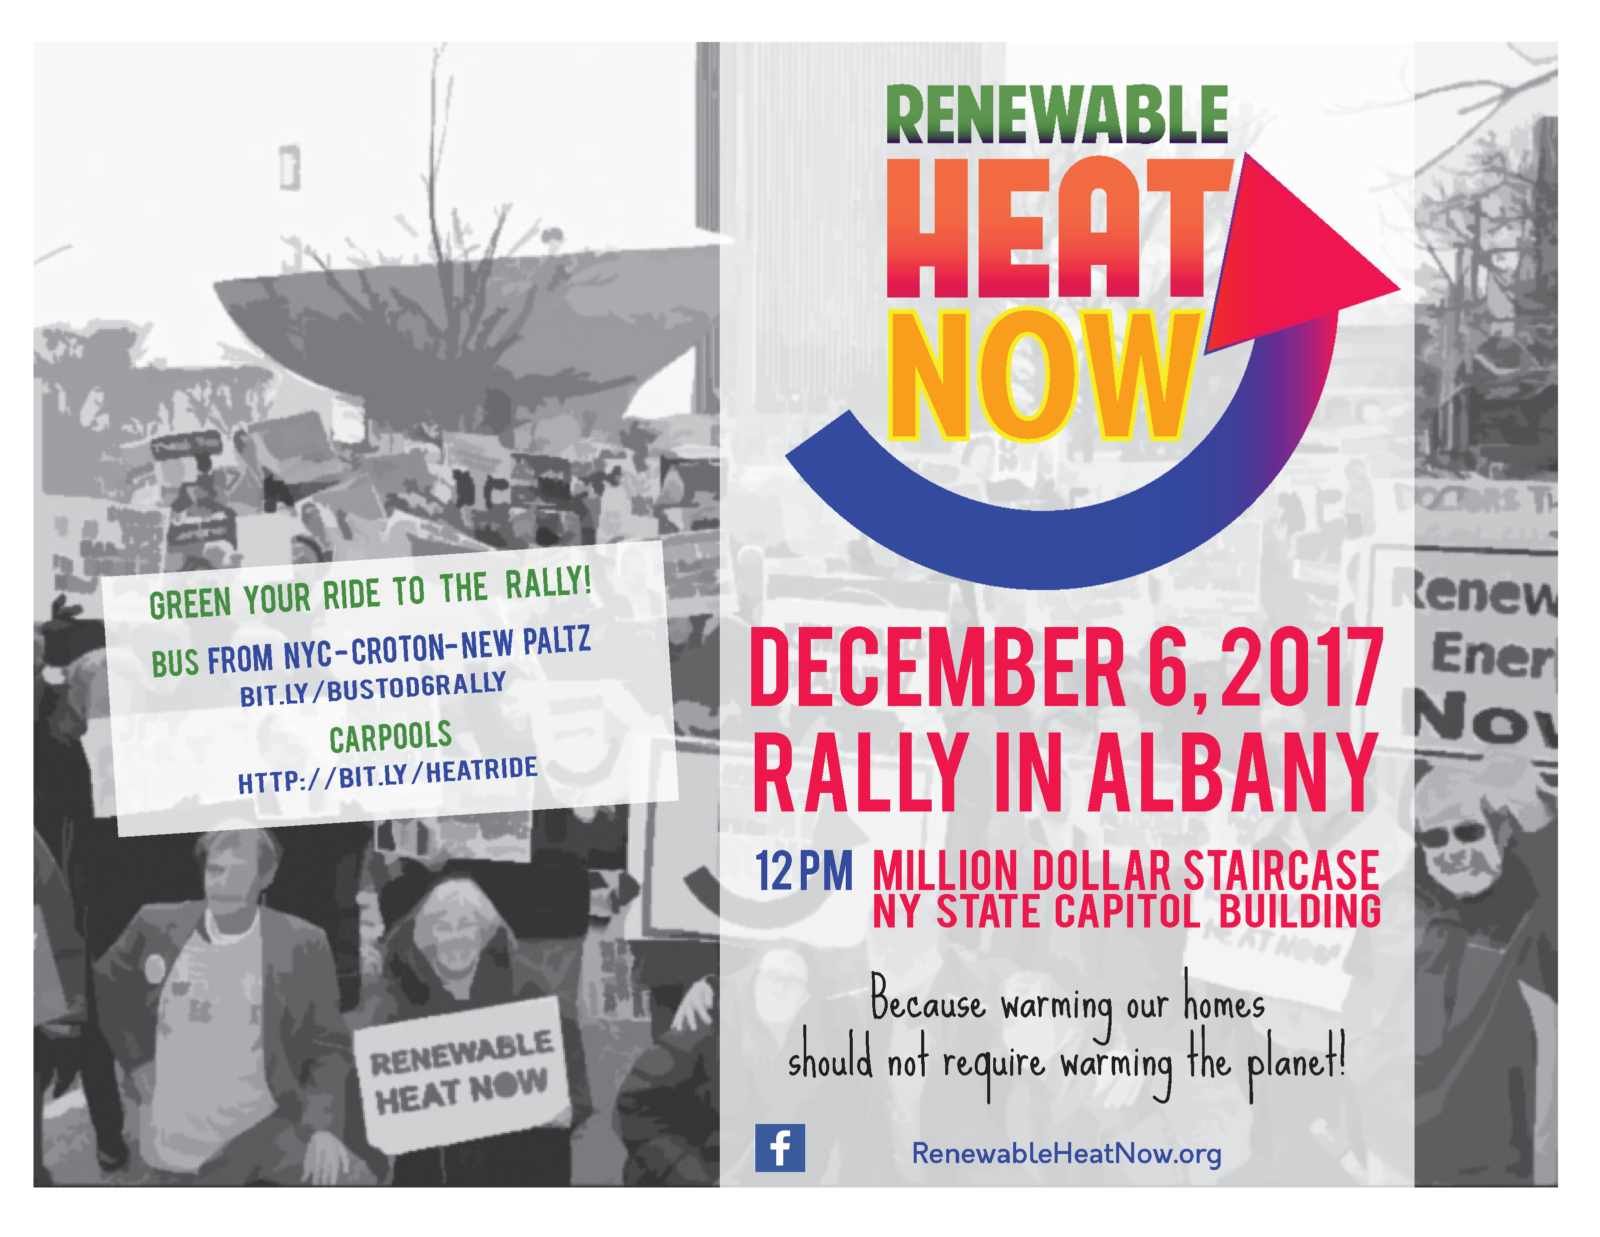 December 6, 12 PM, NY Capitol Building